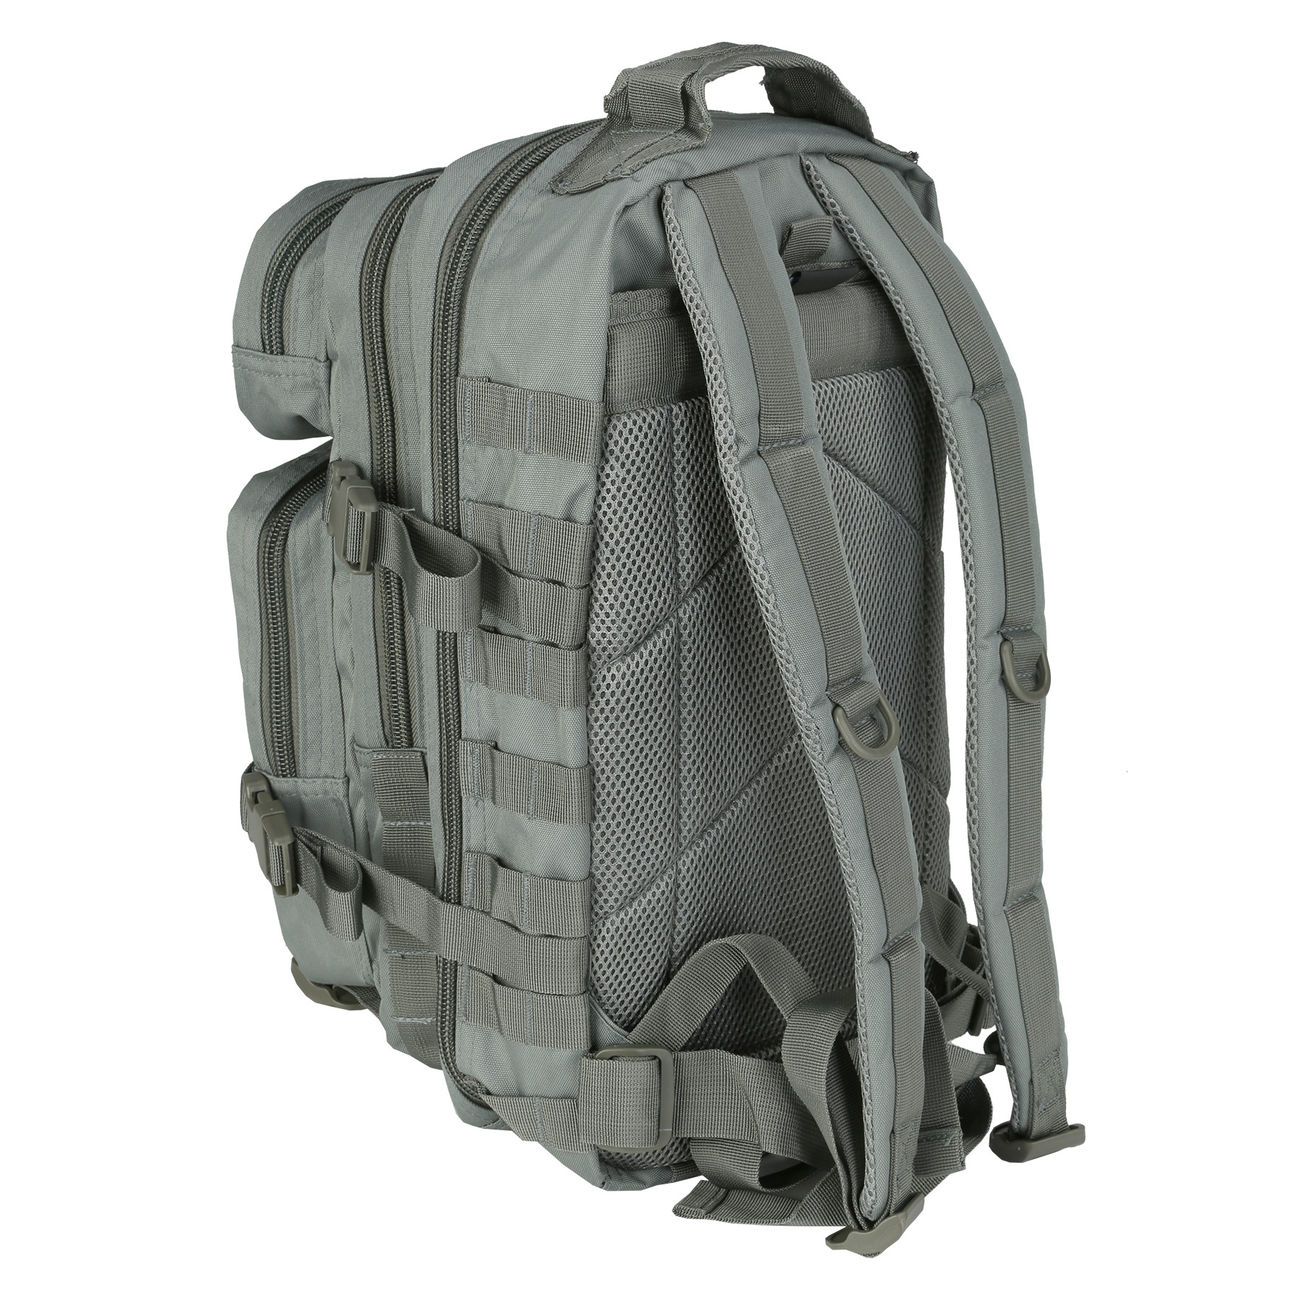 Mil-Tec Rucksack US Assault Pack I 20 Liter foliage 3